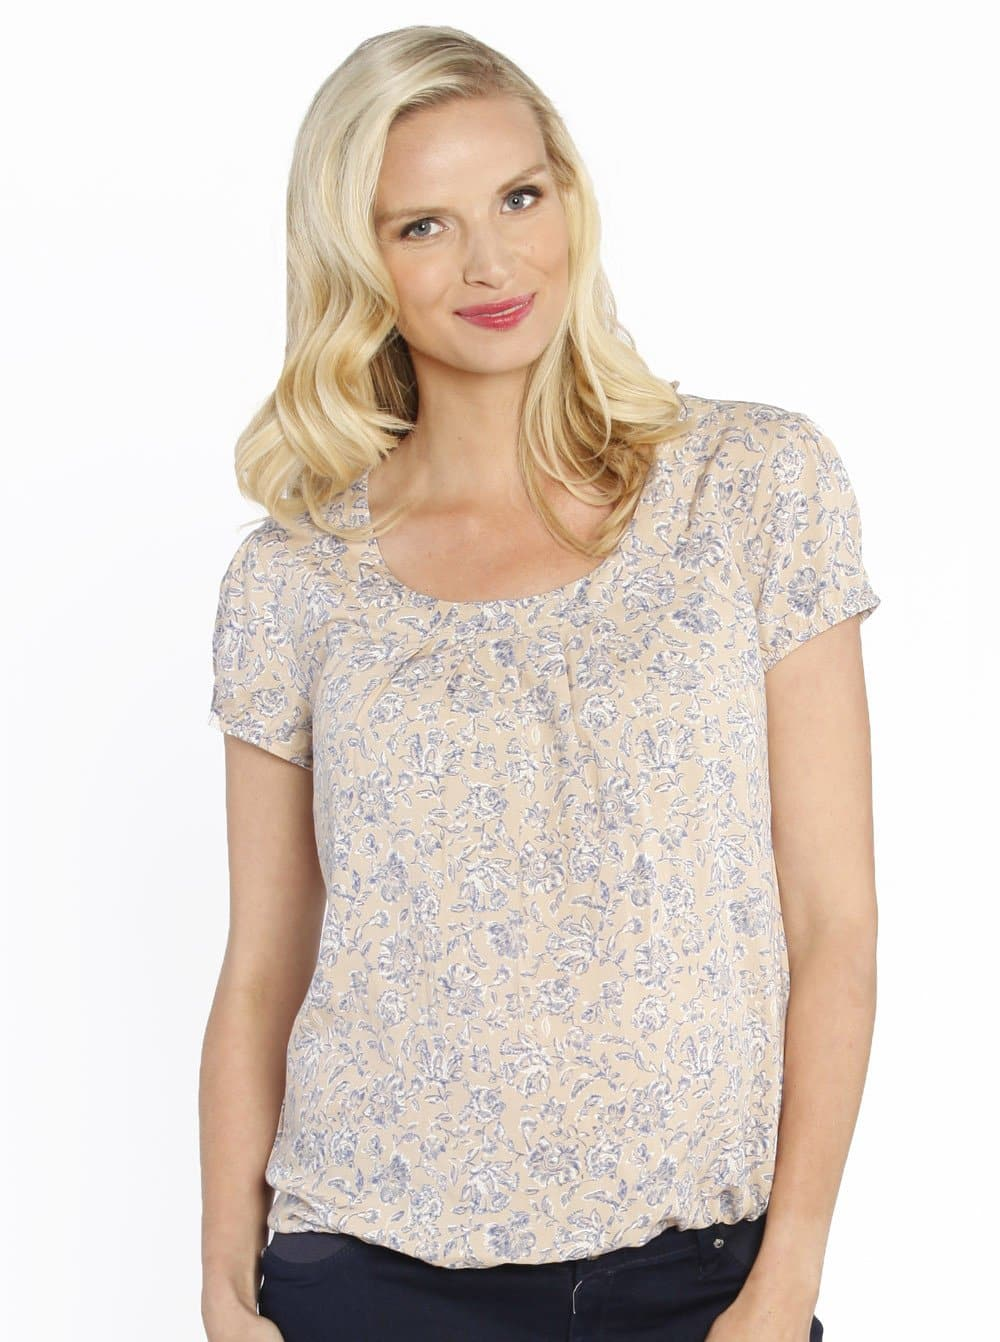 Maternity Round Neck Top - Blue Flowers In Beige